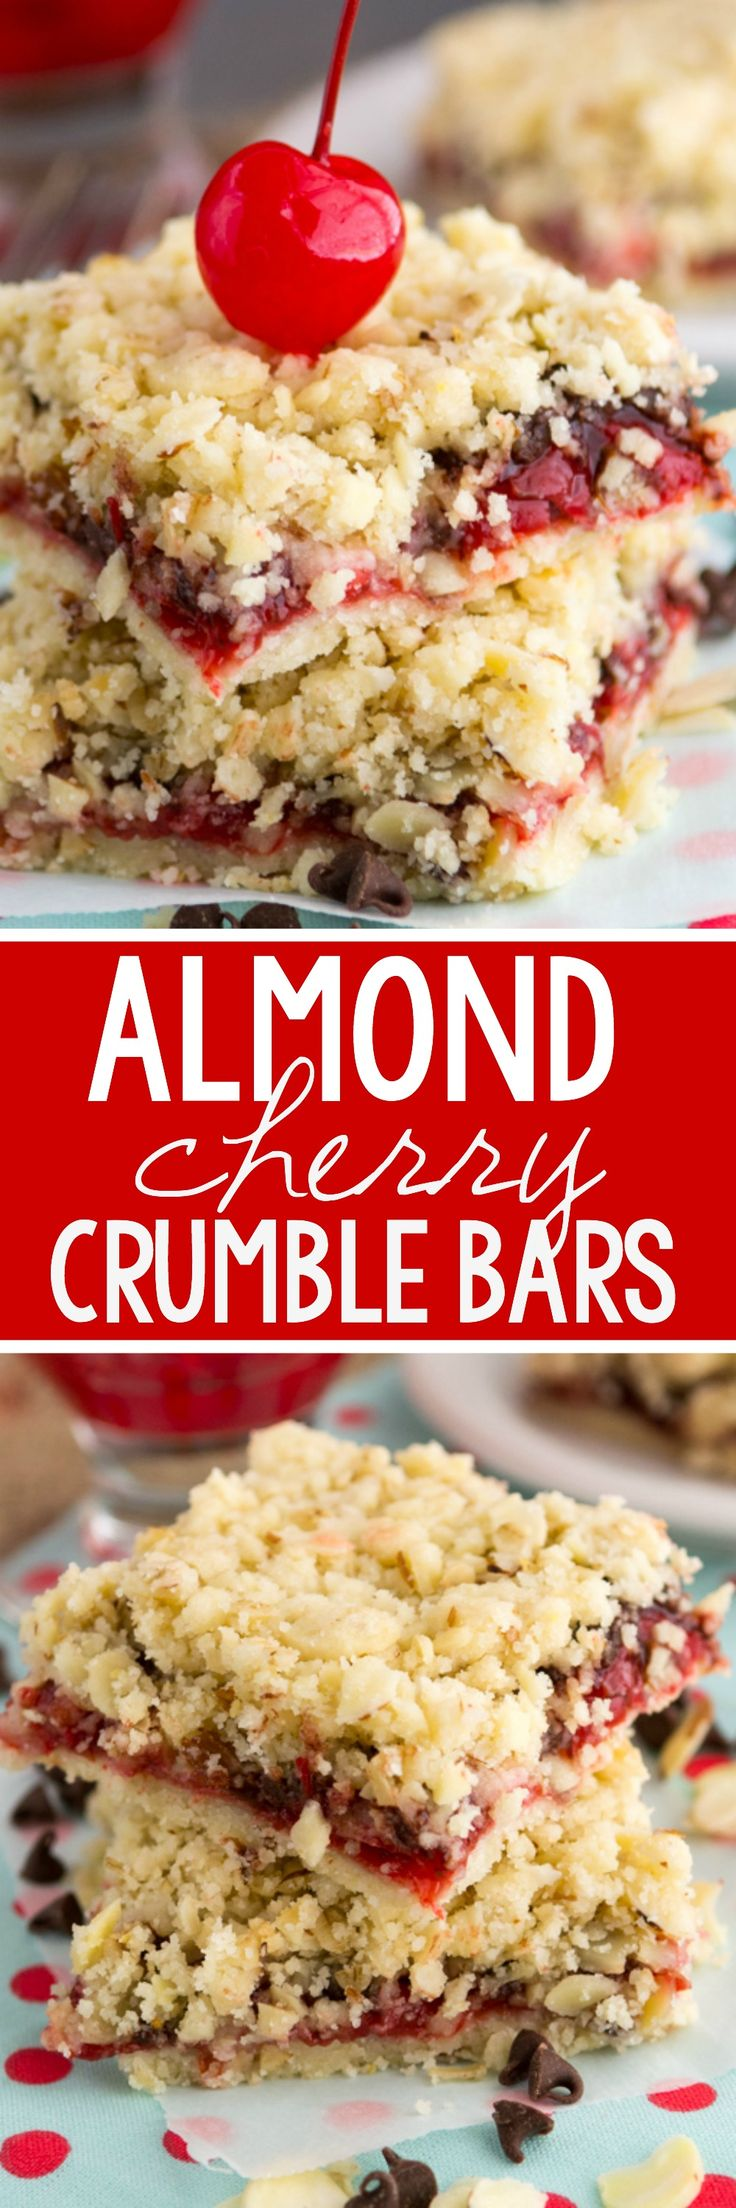 Almond Chocolate Cherry Crumble Bars - these EASY pie bars are crumbly and full of almonds, maraschino cherries and CHOCOLATE!